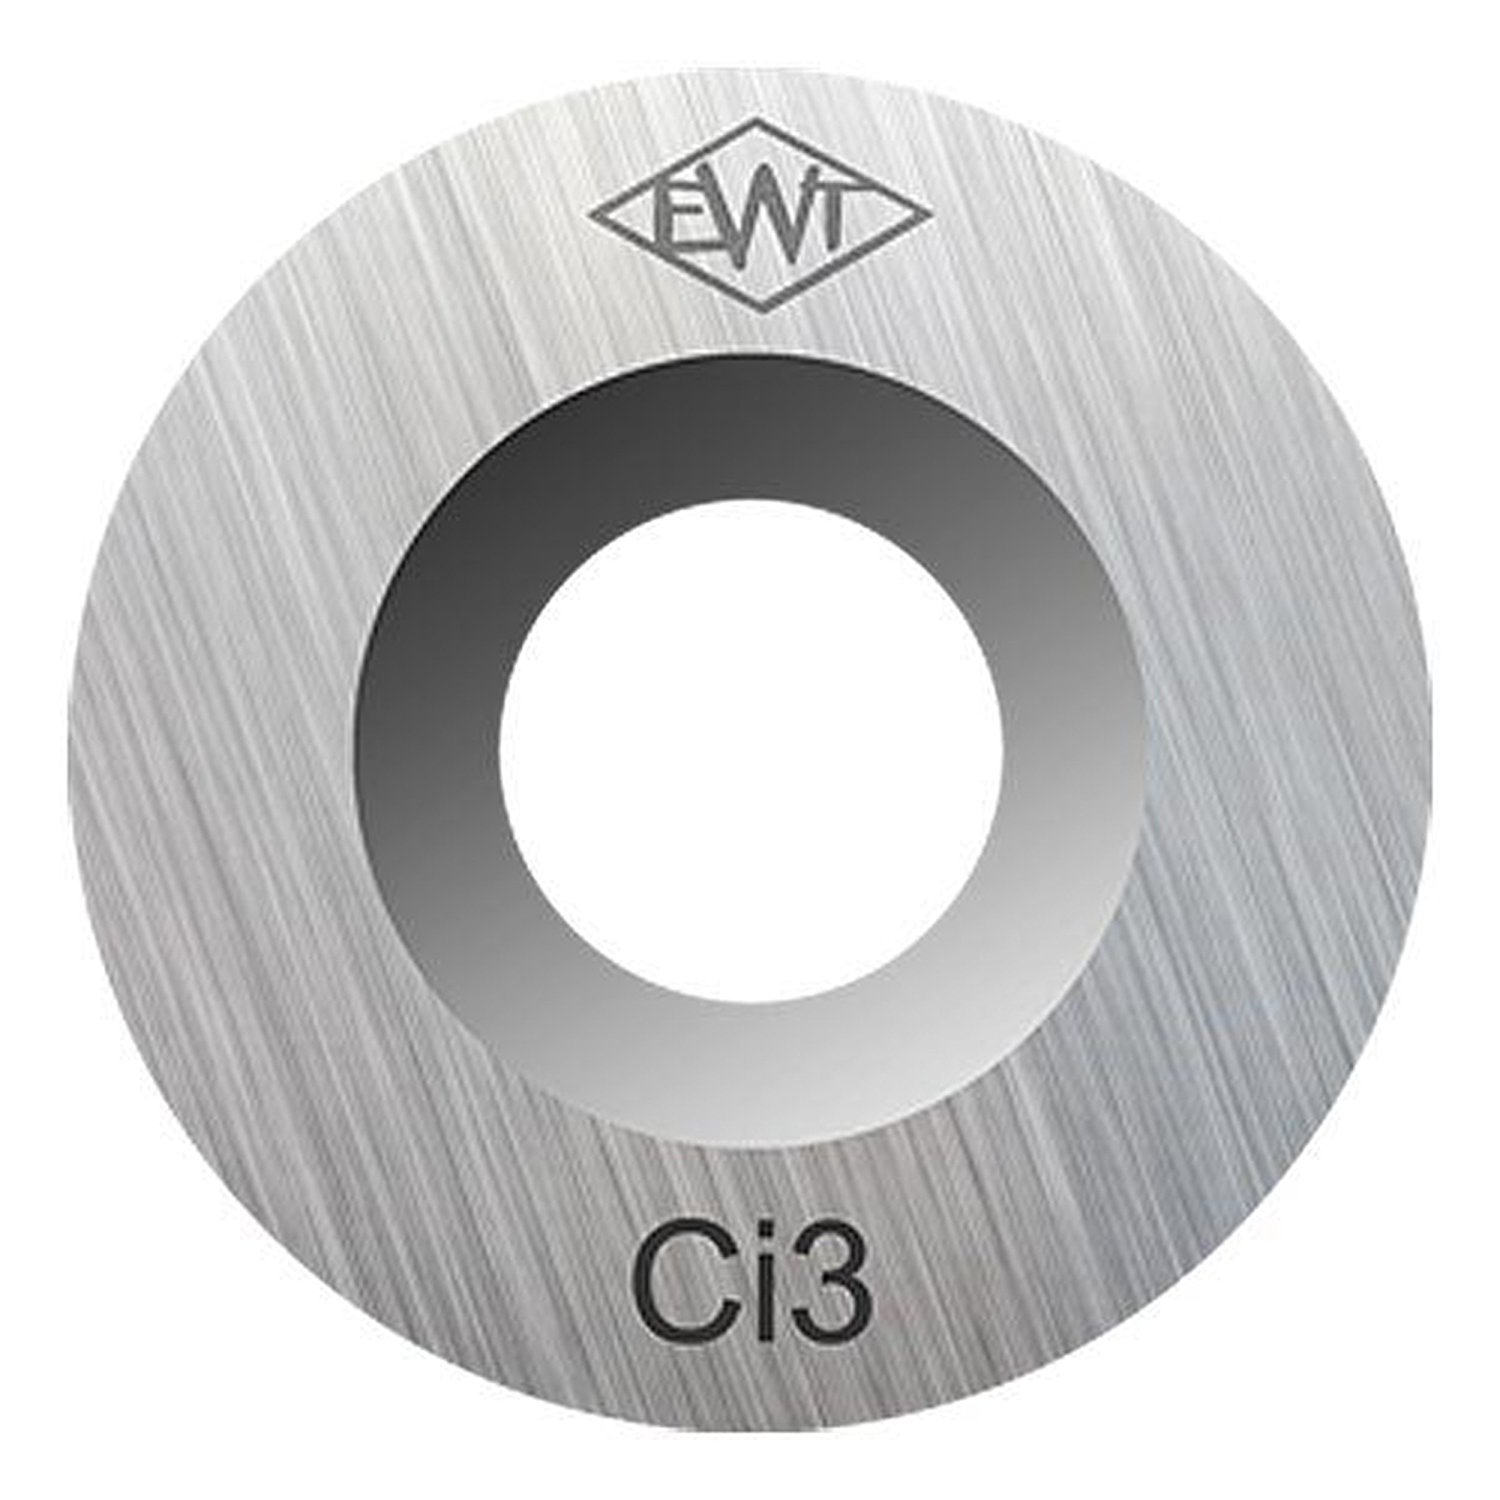 Best Rated in Power Lathe Accessories & Helpful Customer